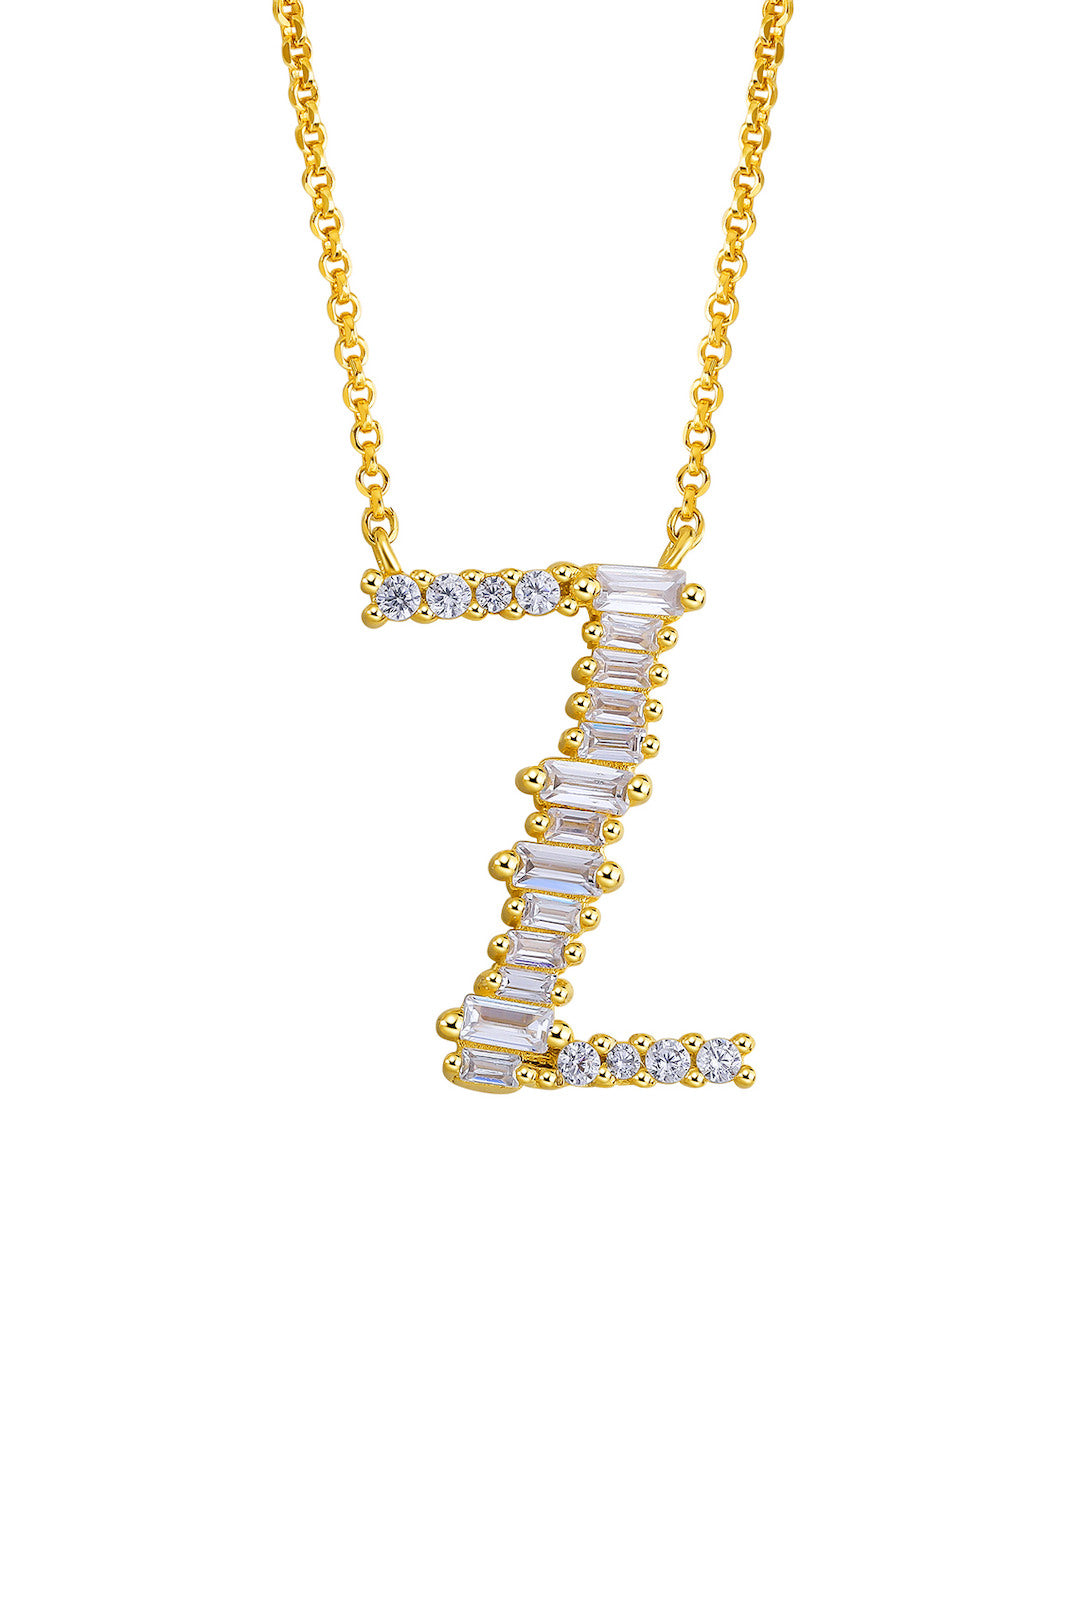 Gold Plated Sterling Silver Initial Necklace - Letter Z Detail